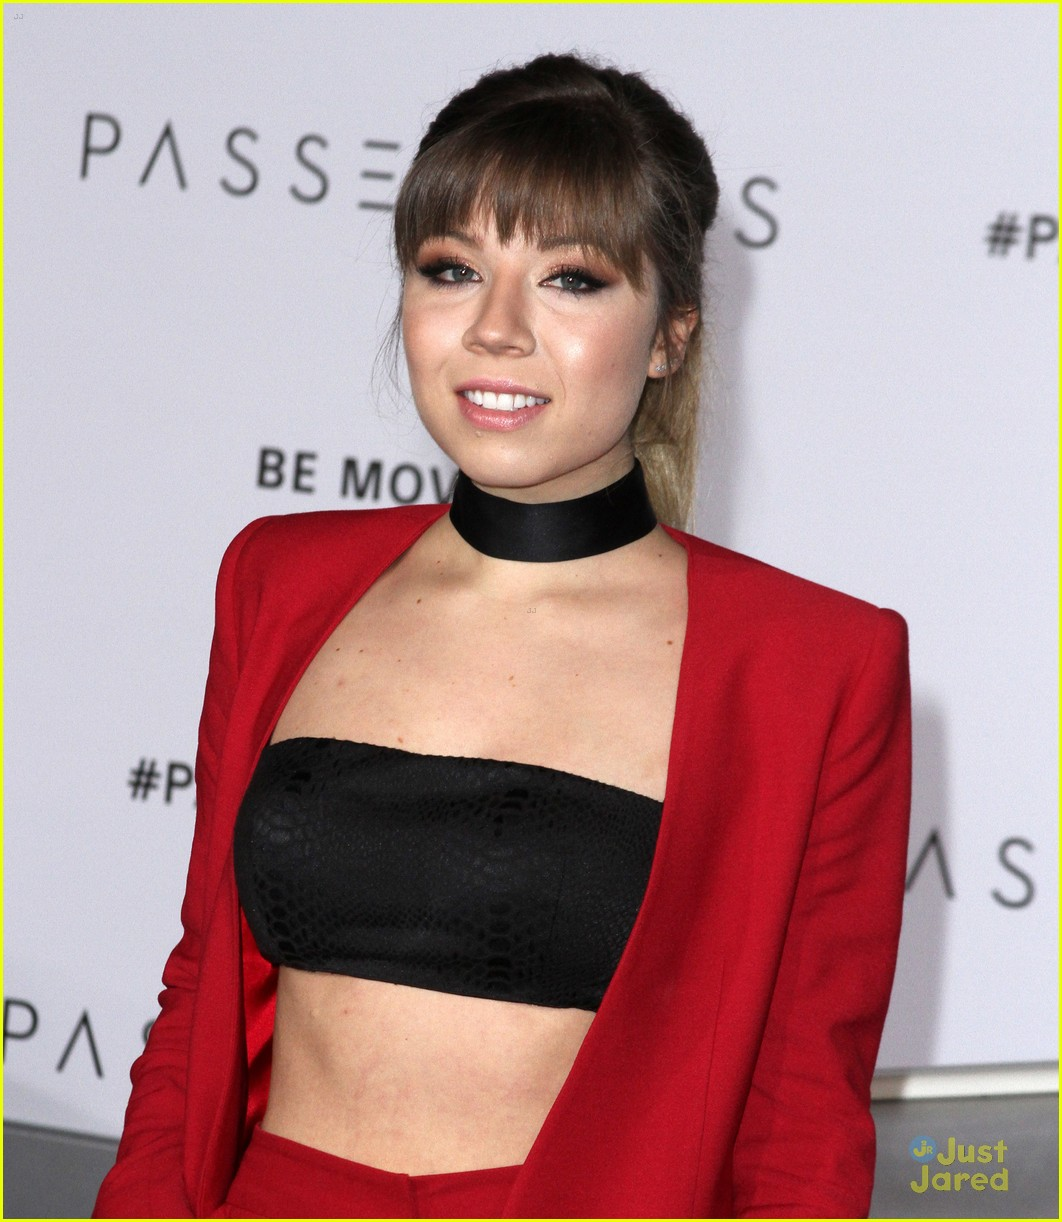 Jennette mccurdy makes a red suit statement at passengers jennette mccurdy makes a red suit statement at passengers premiere photo 1058634 photo gallery just jared jr voltagebd Images